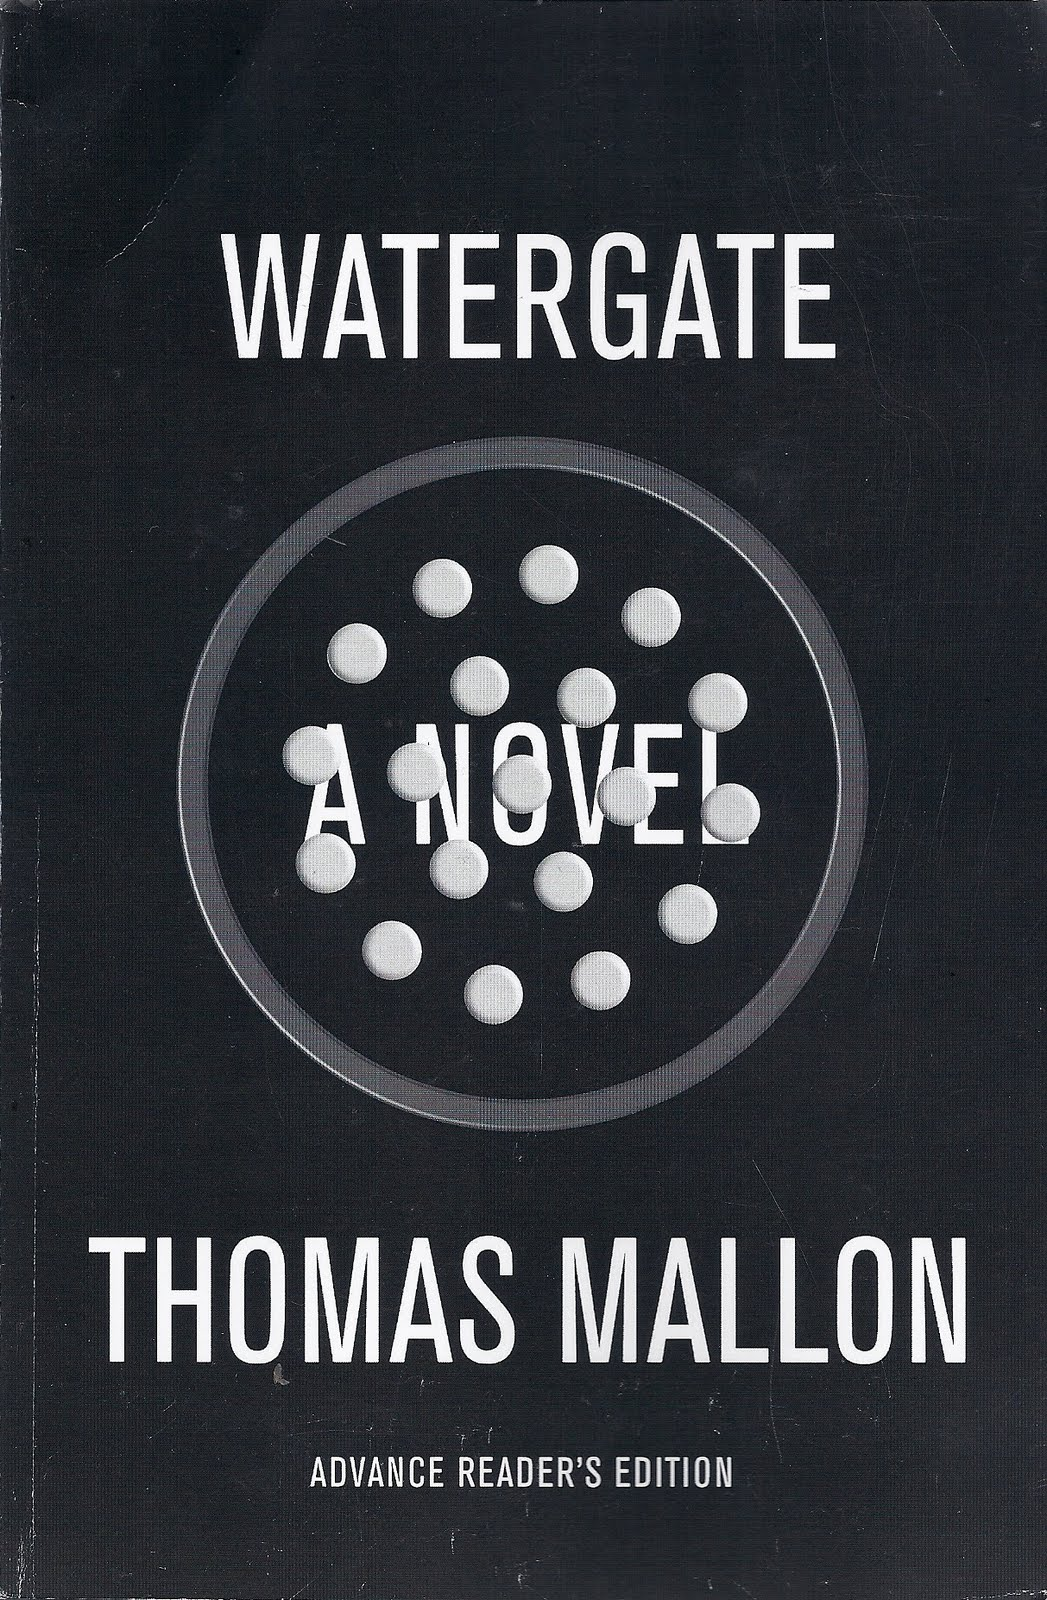 WATERGATE by Thomas Mallon: Book Review [The Ryan Dixon Line]